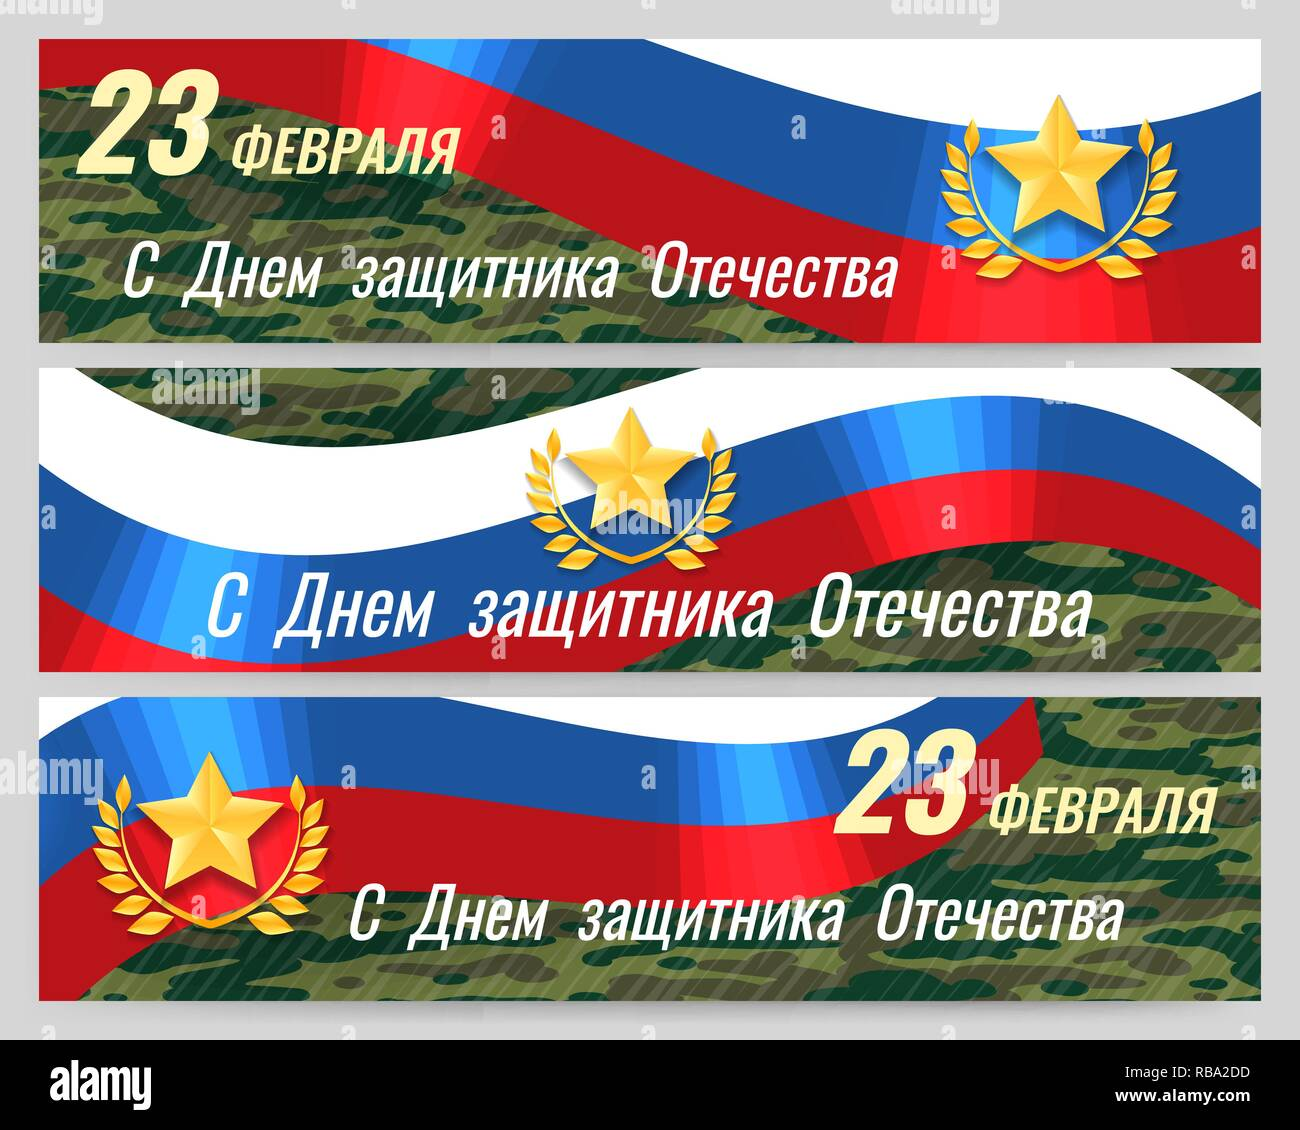 February 23, banners. Millitary army background for russian holiday. Translation February 23 Defender of the Fatherland Day, vector illustration - Stock Vector